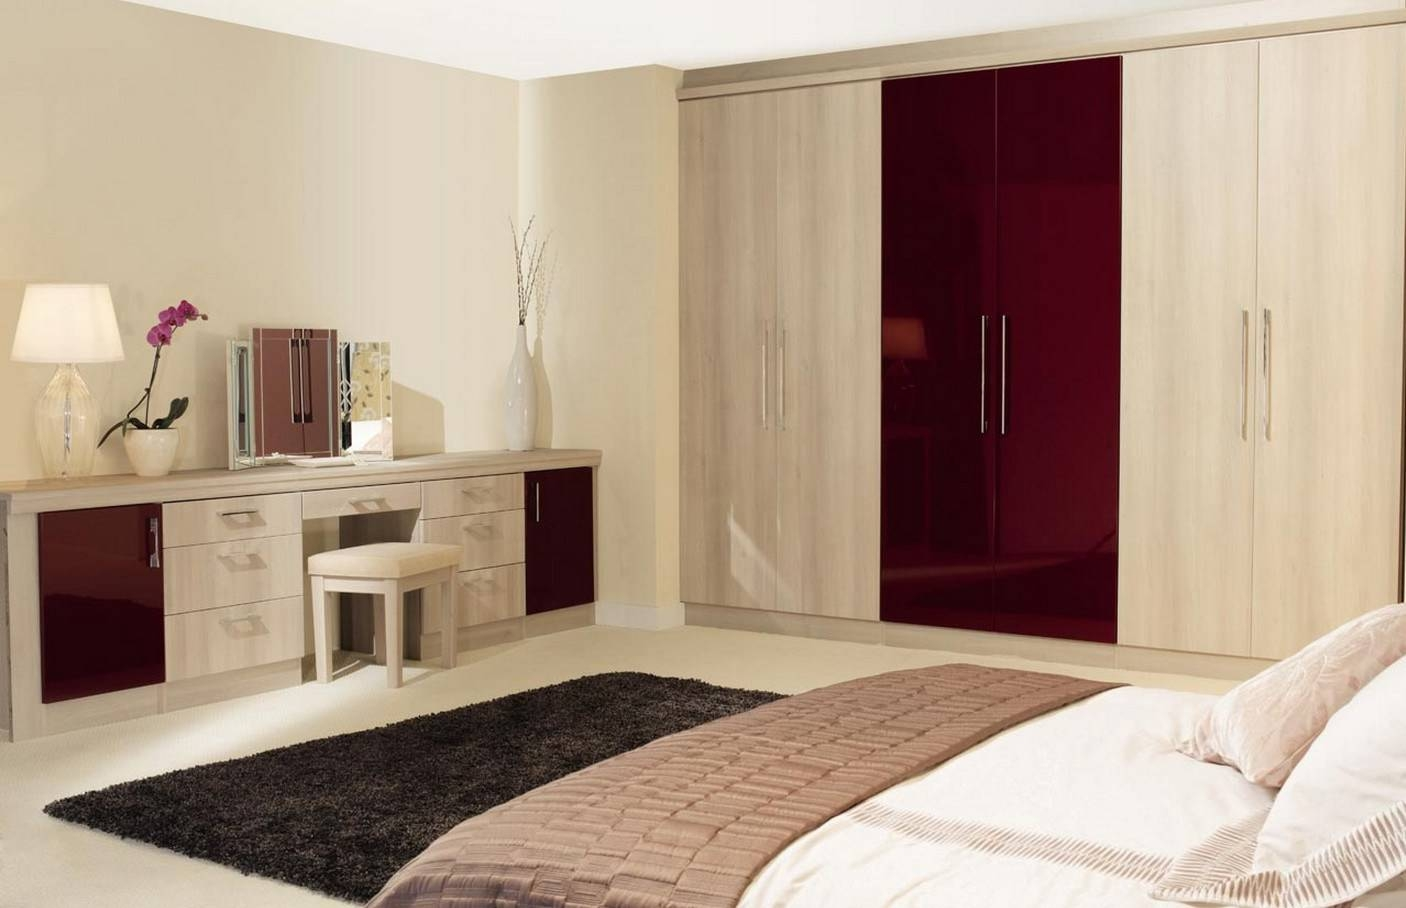 35+ Images Of Wardrobe Designs For Bedrooms with Bedroom Wardrobes (Image 1 of 15)